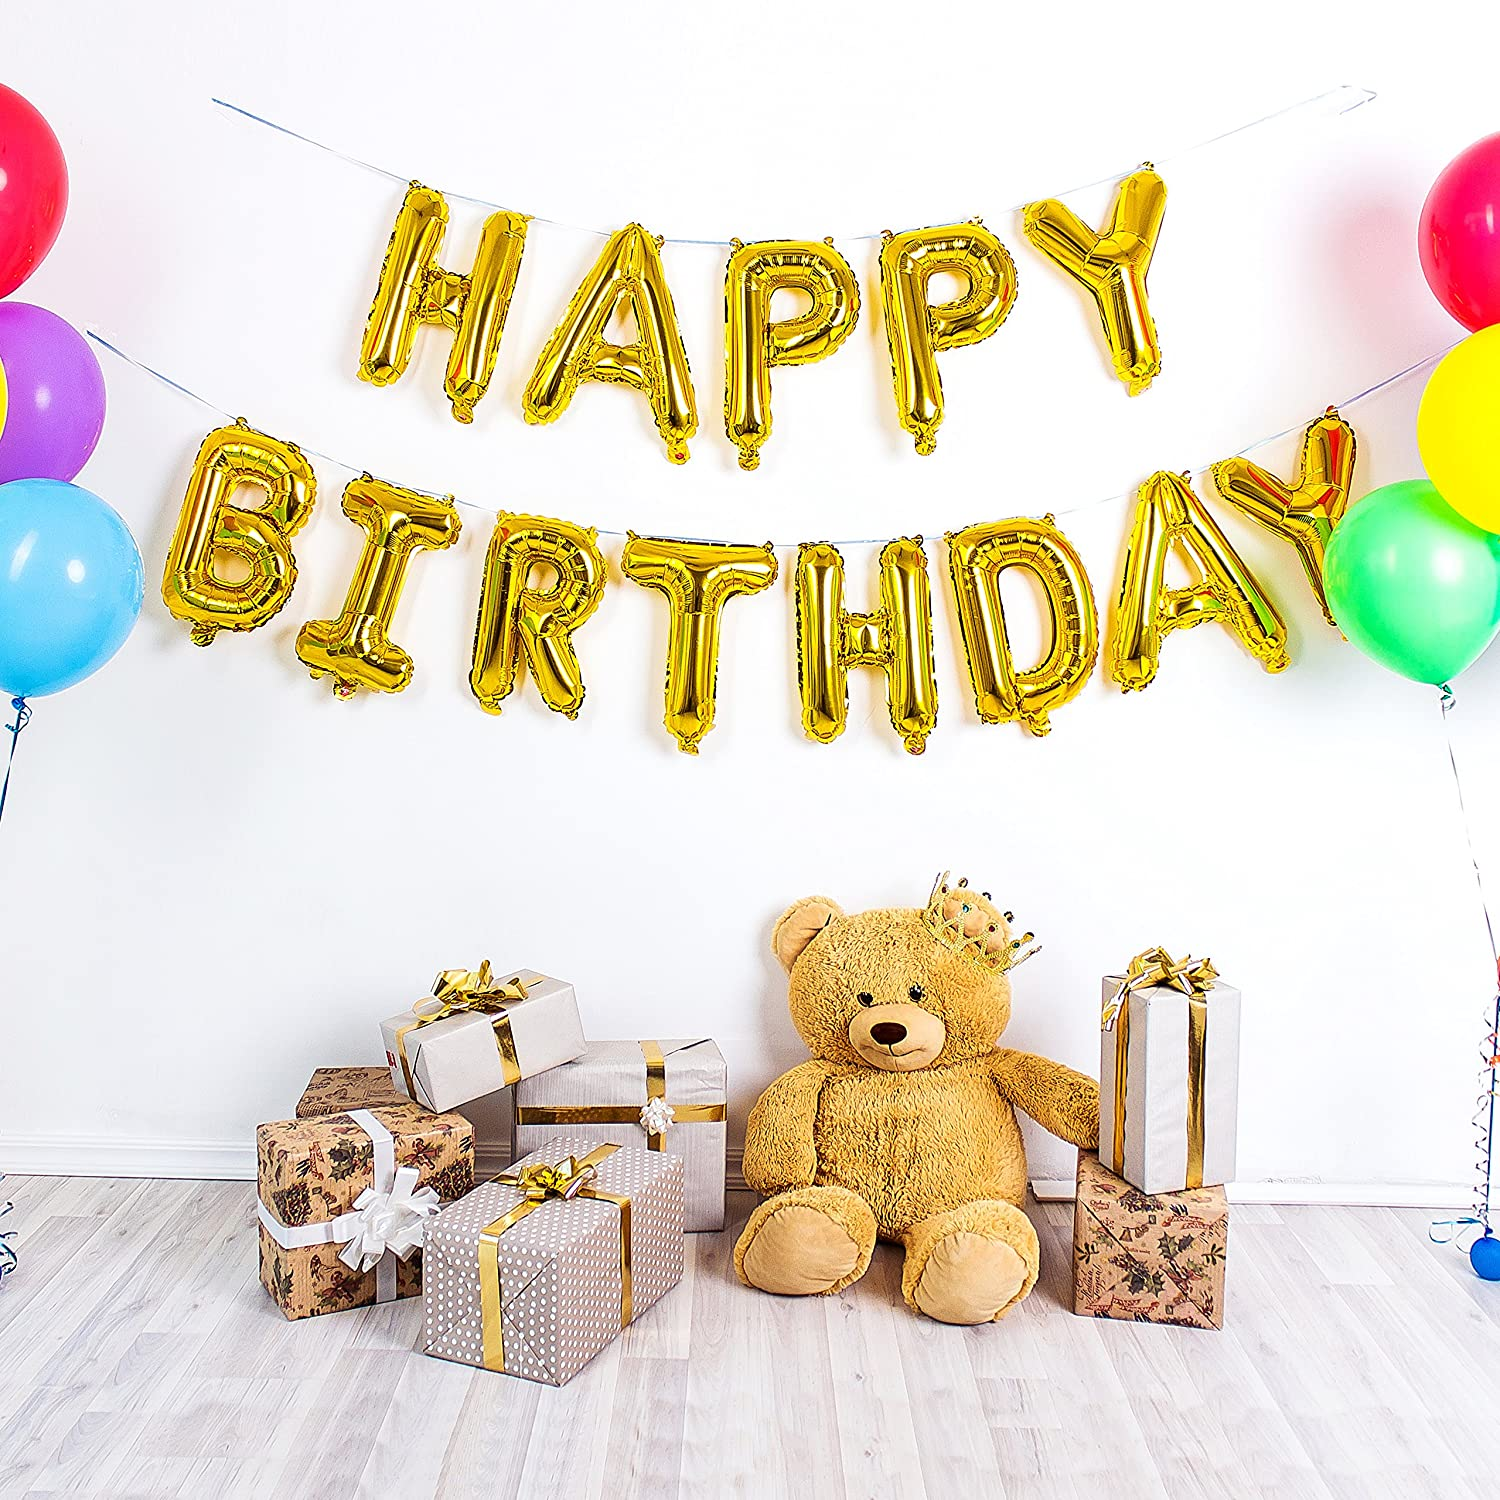 Teddy King Premium Gold Happy Birthday Balloons Banner With Durable Foil 16 Inch Mylar 13 Individual Balloon Letters Stronger Seal For Longer Life